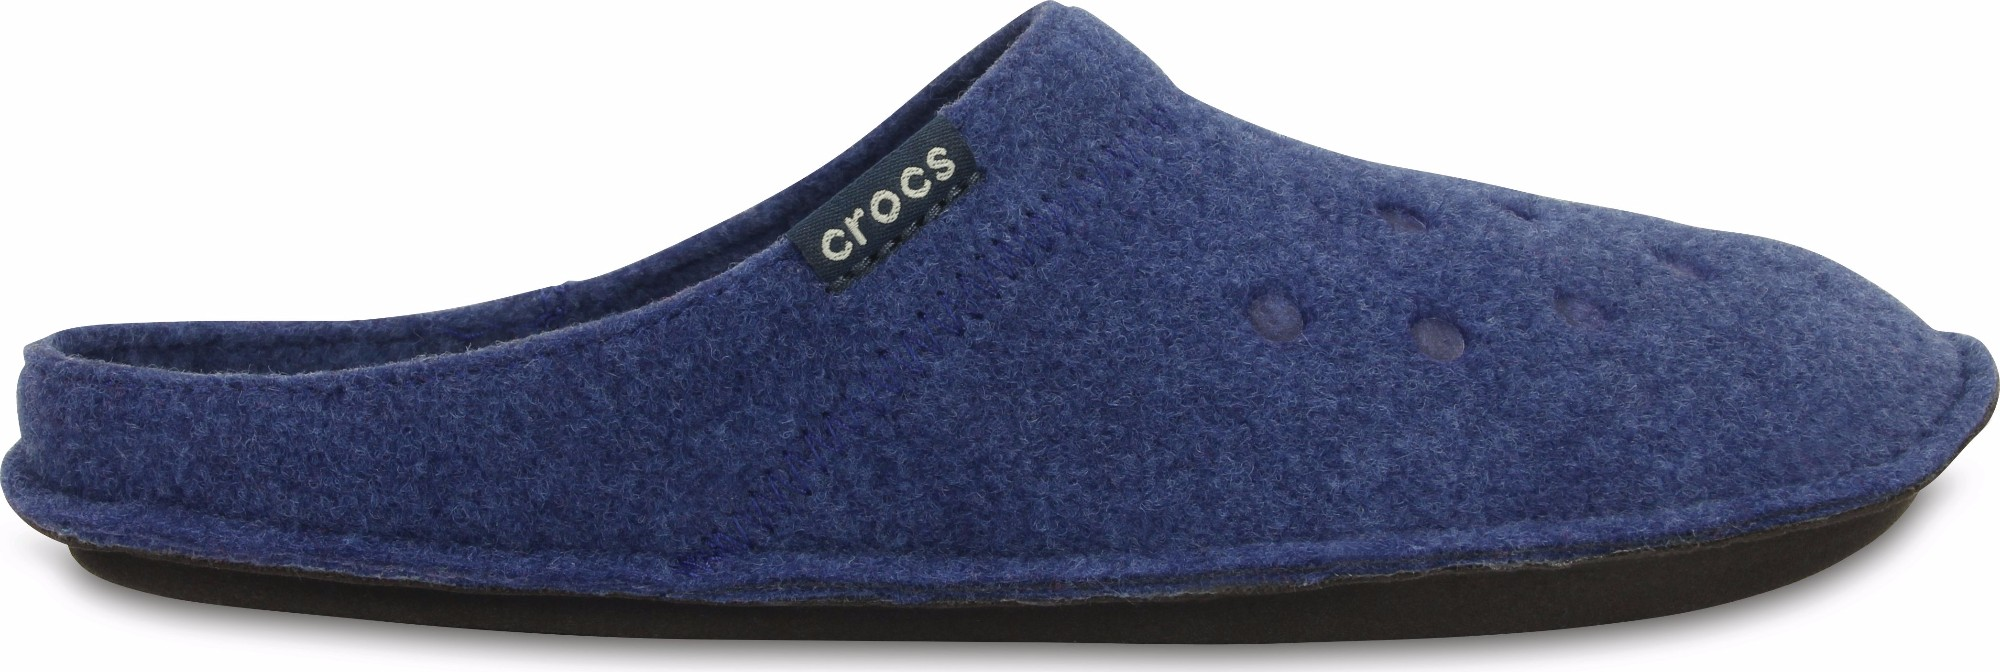 Crocs™ Classic Slipper Cerulean Blue/Oatmeal 45,5